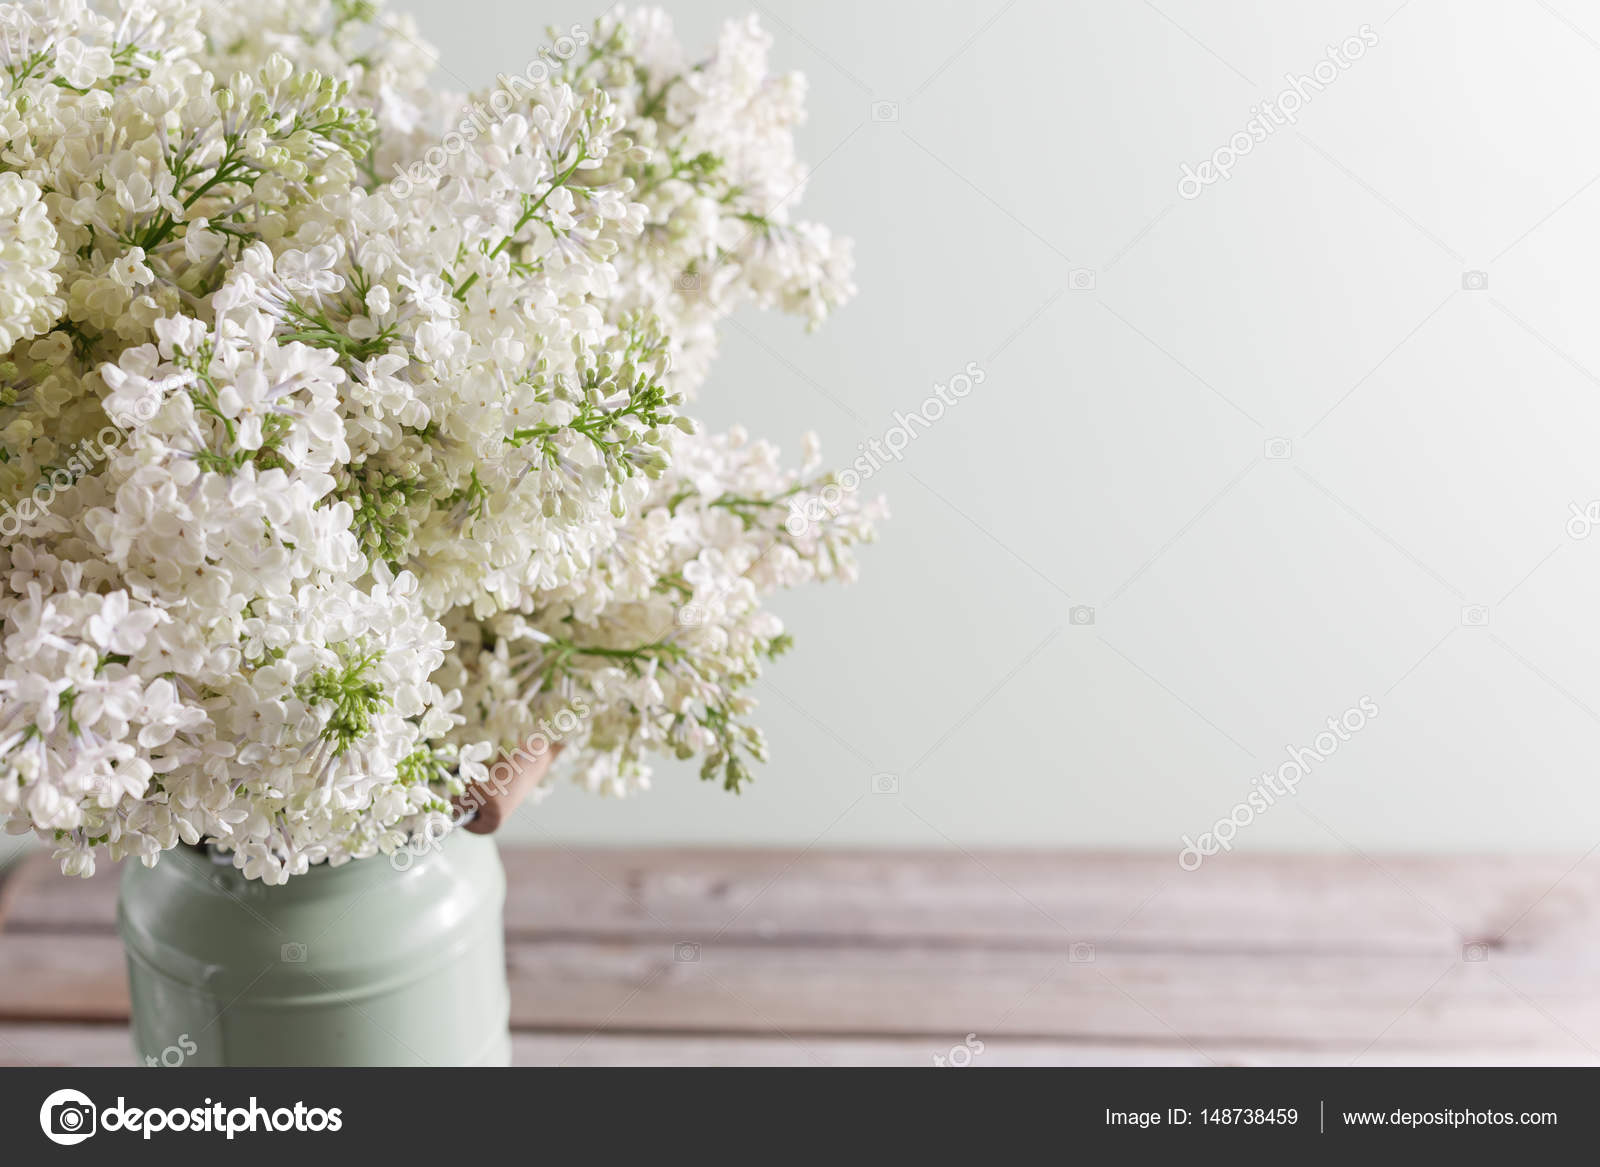 Lilac White Syringa Flowers In Vase Spring Background With White